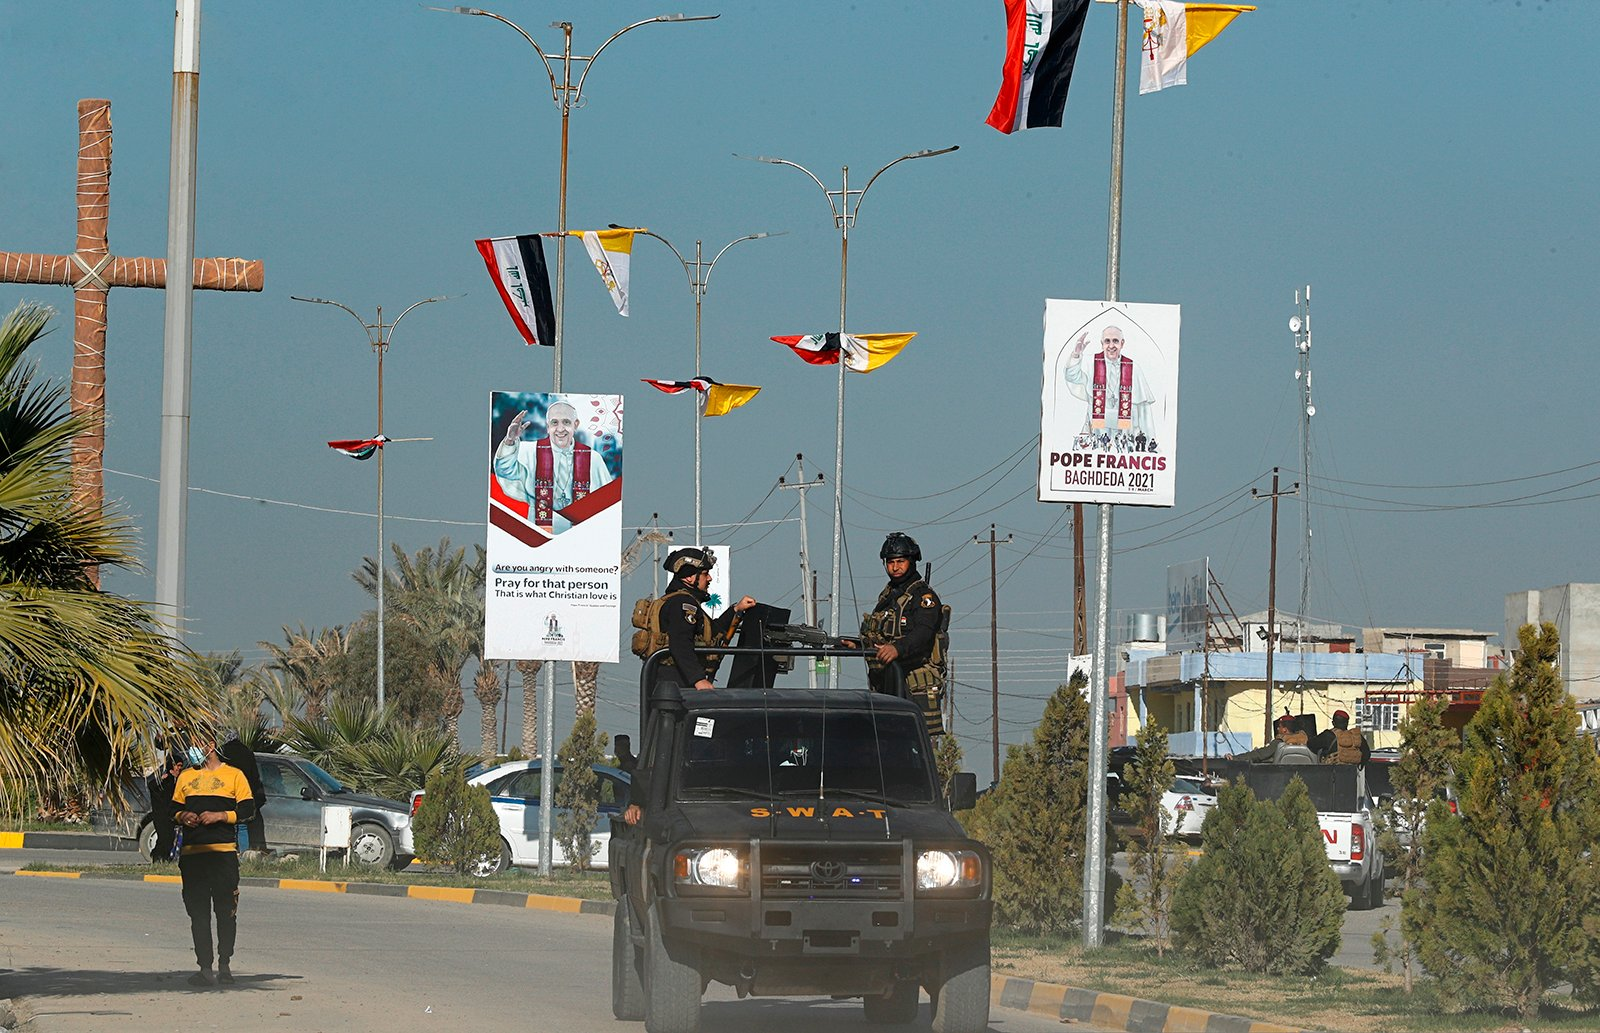 Iraqi security forces pass by Iraqi and the Vatican flags, and posters announcing the upcoming visit of Pope Francis, in a street in Qaraqosh, Iraq, Monday, Feb. 22, 2021. (AP/Photo/Hadi Mizban)